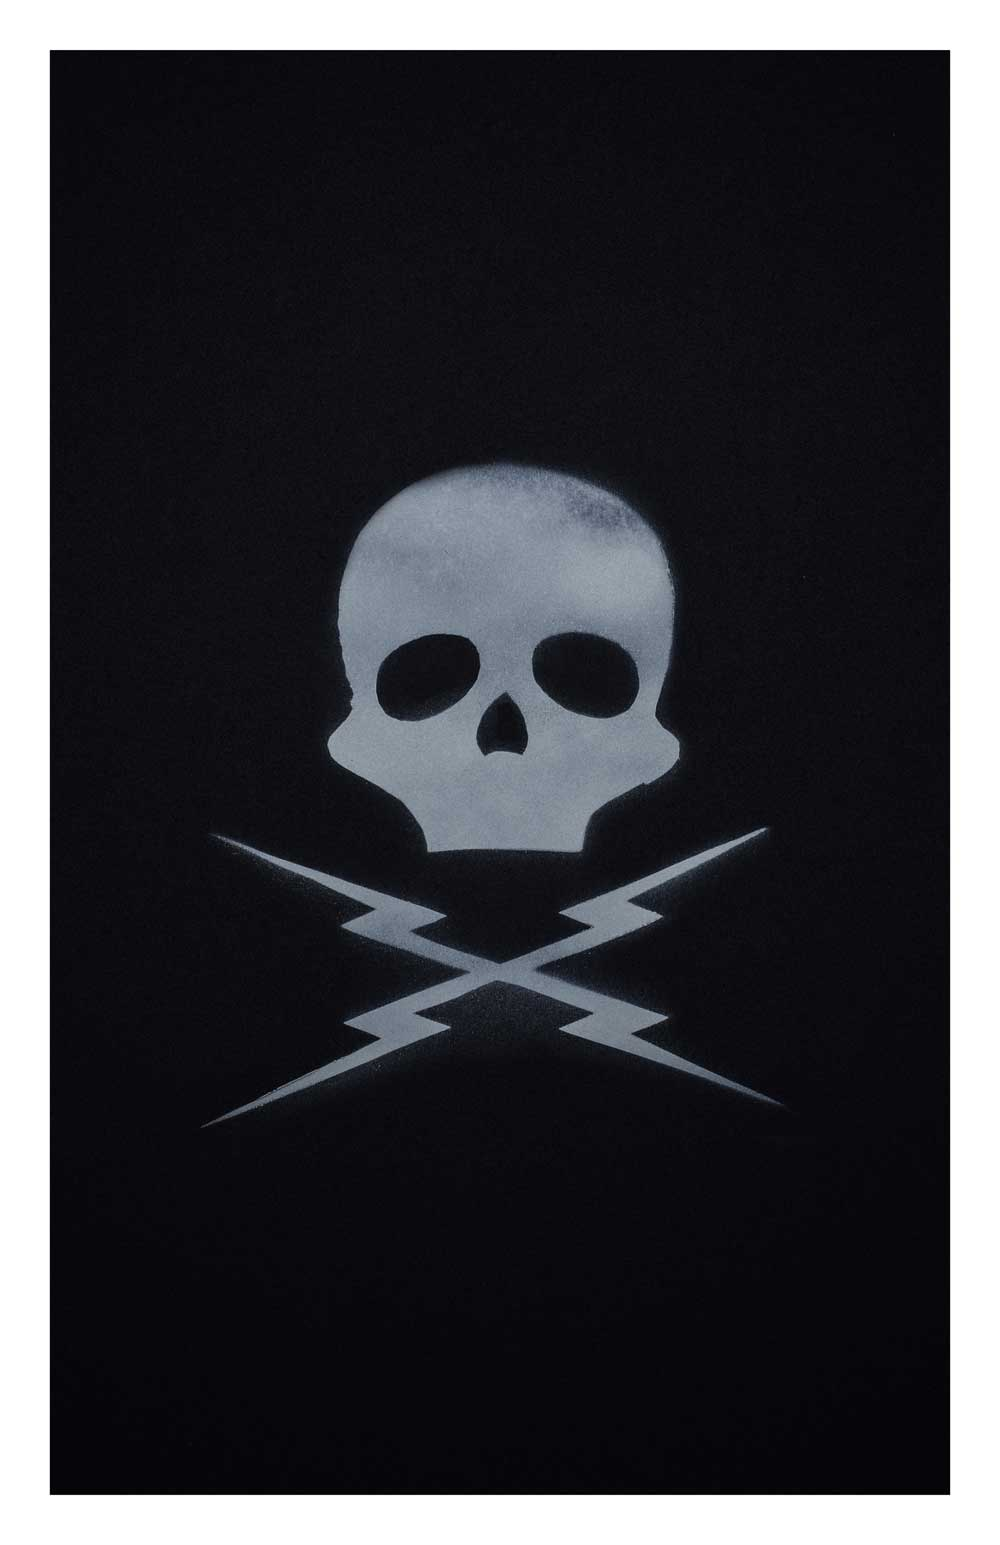 Minimalist Death Proof by Jacob Kuddes and Ben Lundsten